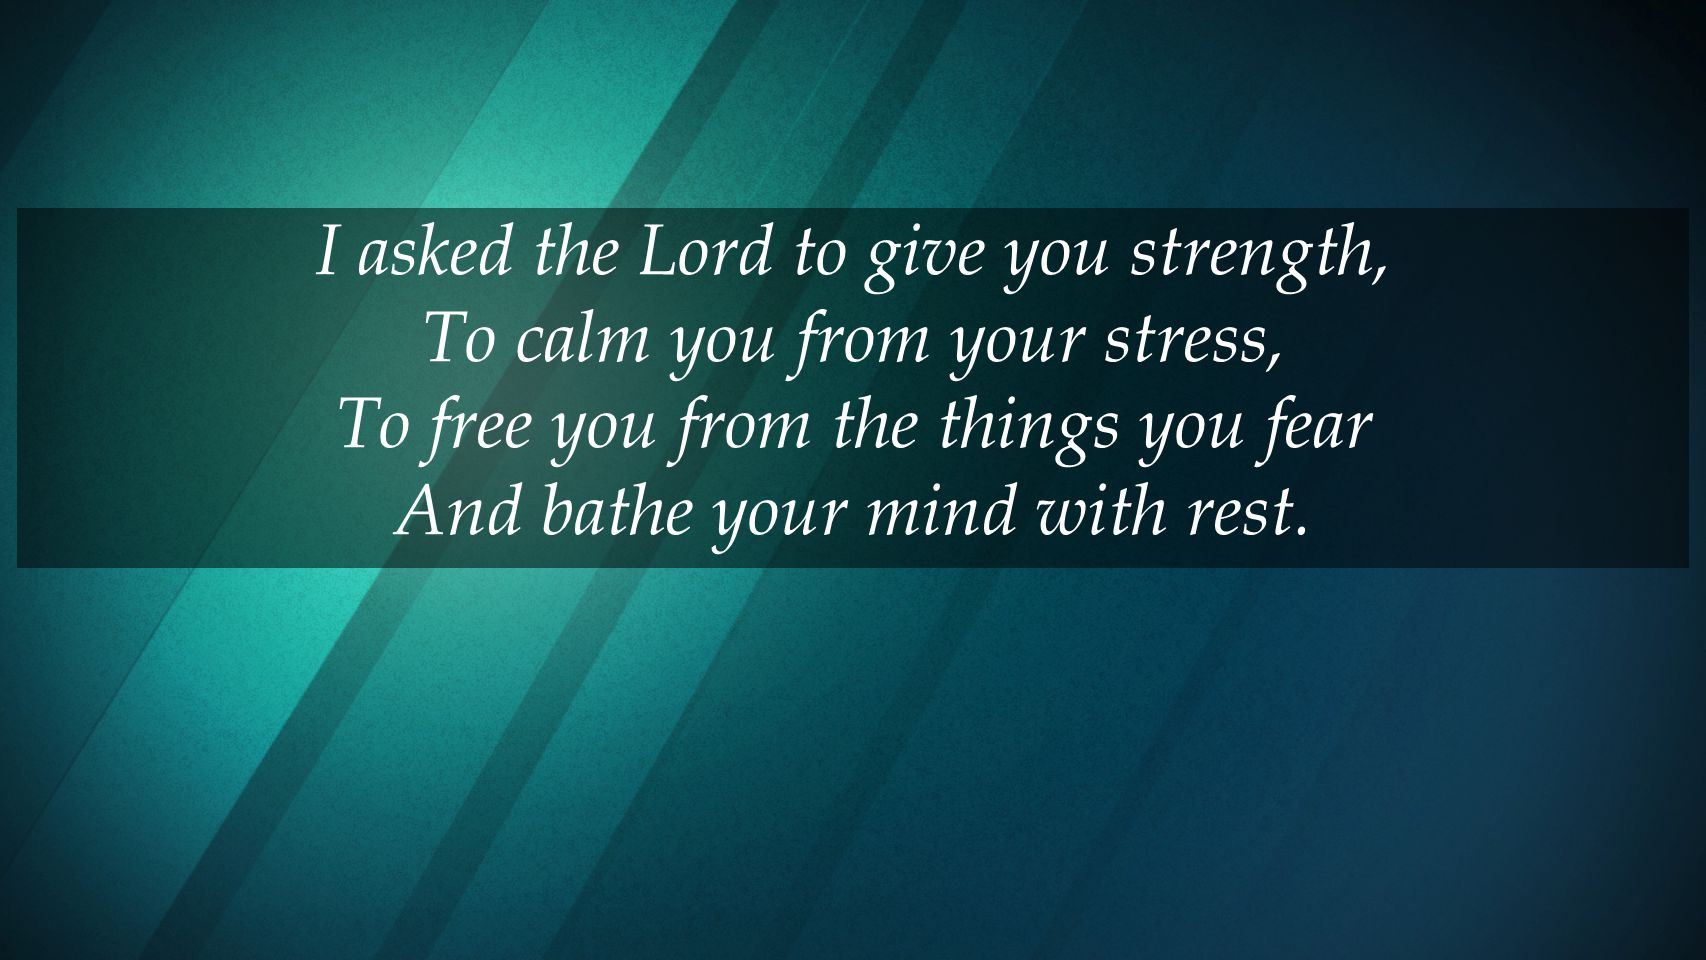 I asked the Lord to give you strength, To calm you from your stress,